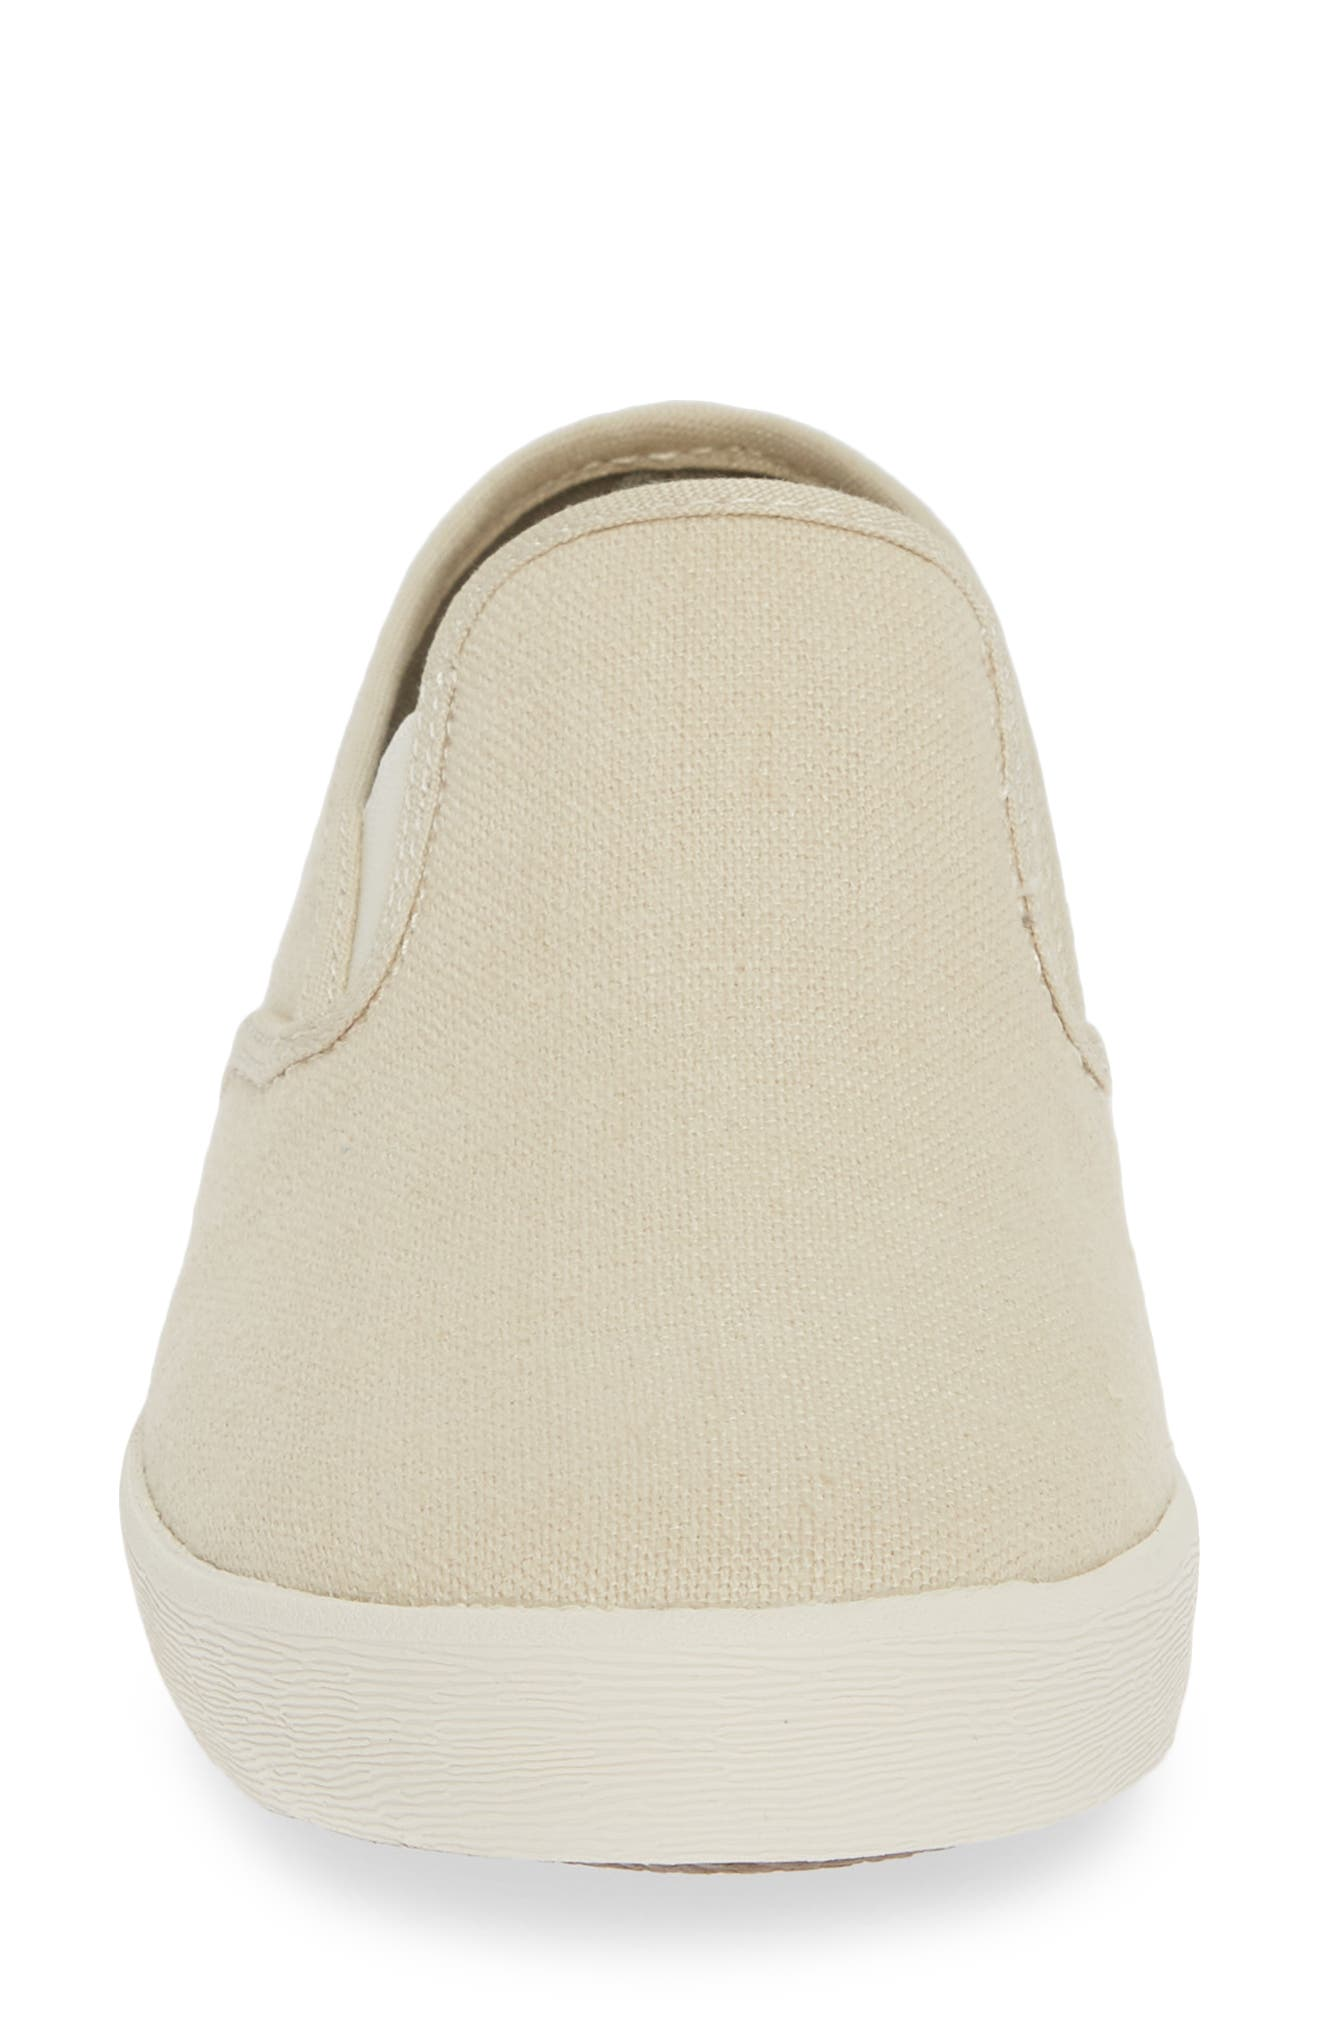 Baja Standard Slip-On Sneaker,                             Alternate thumbnail 4, color,                             NATURAL